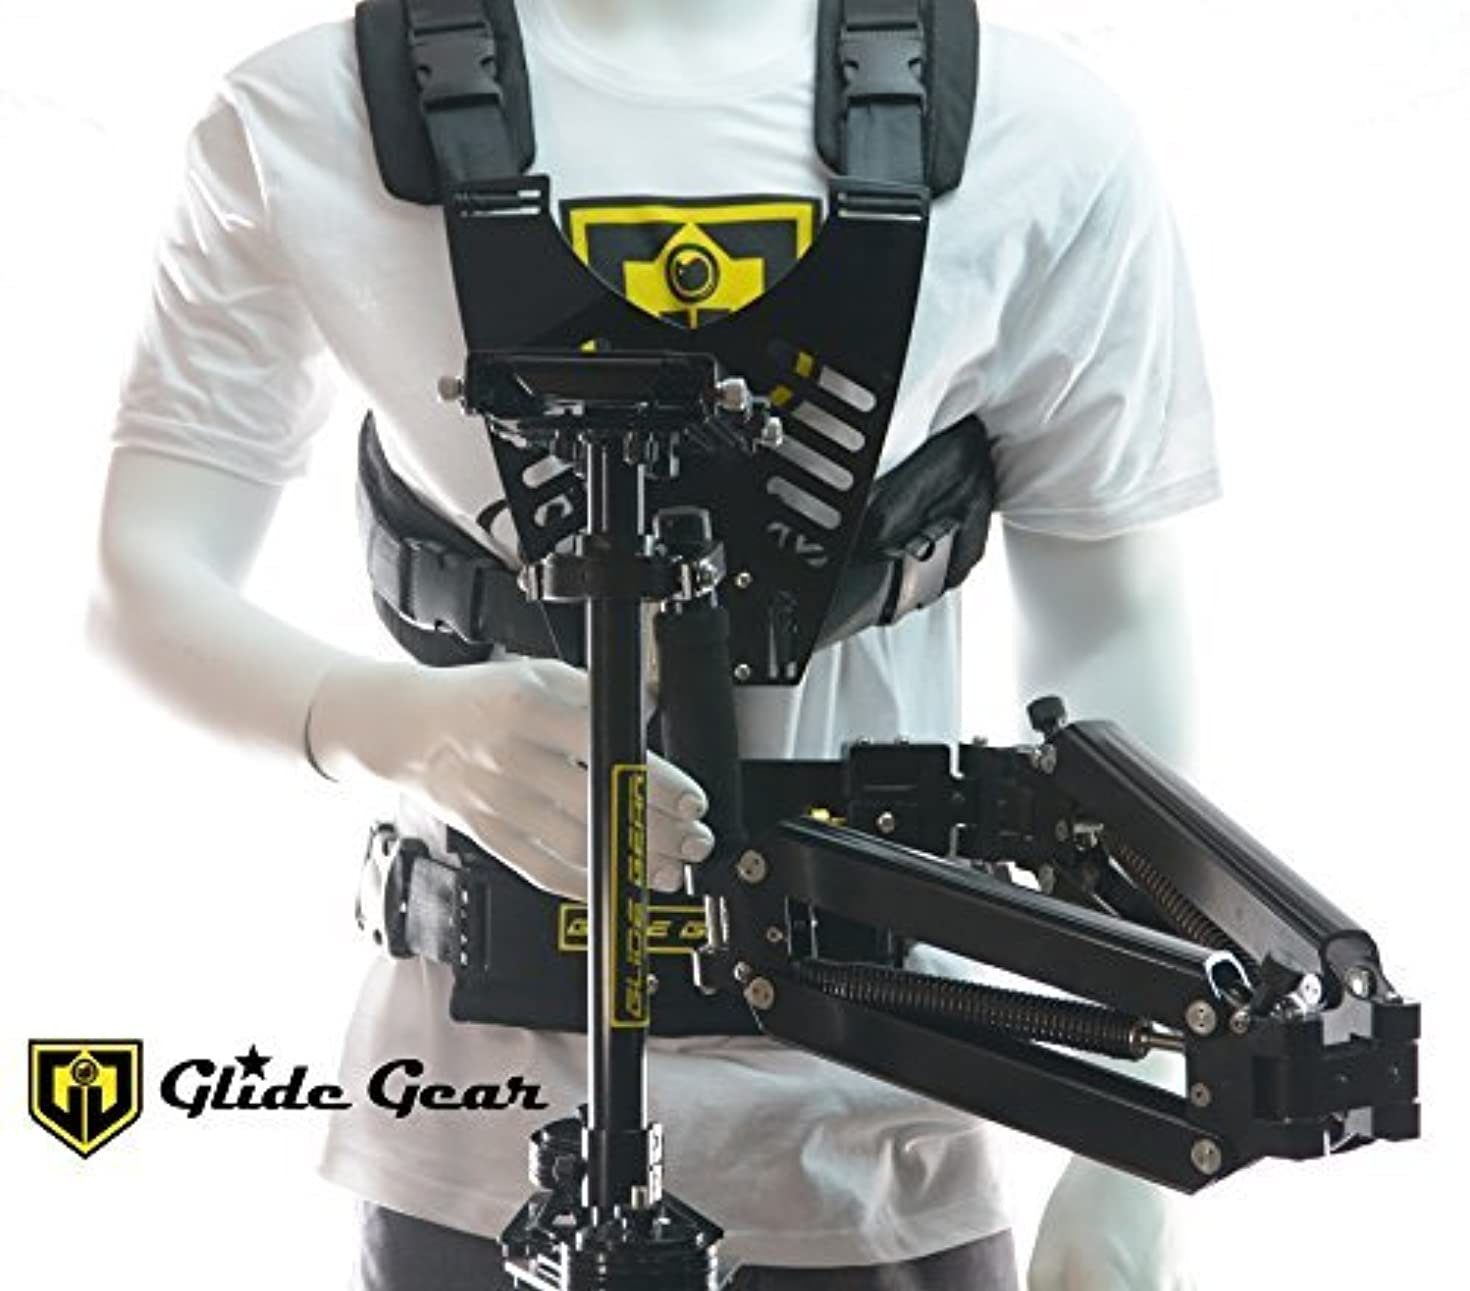 Glide Gear DNA 6002 Vest & Arm Video Camera Stabilizer System 7-12lbs Rigs